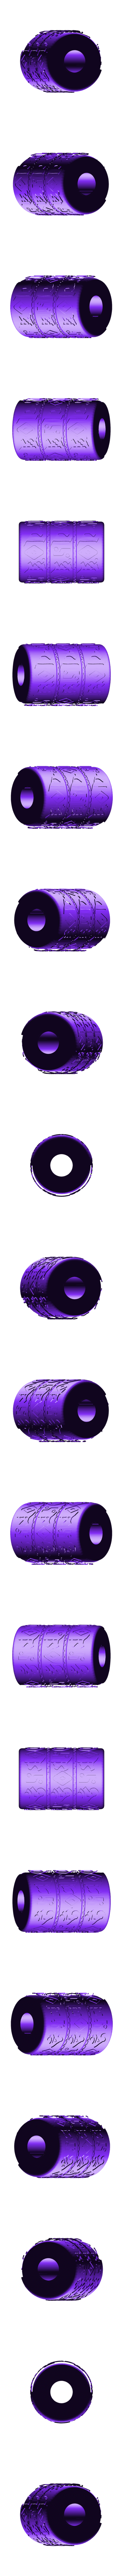 Six_words_of_mantra_cylinder.stl Download free STL file Prayer wheel (With frame) • 3D printing template, NickChung